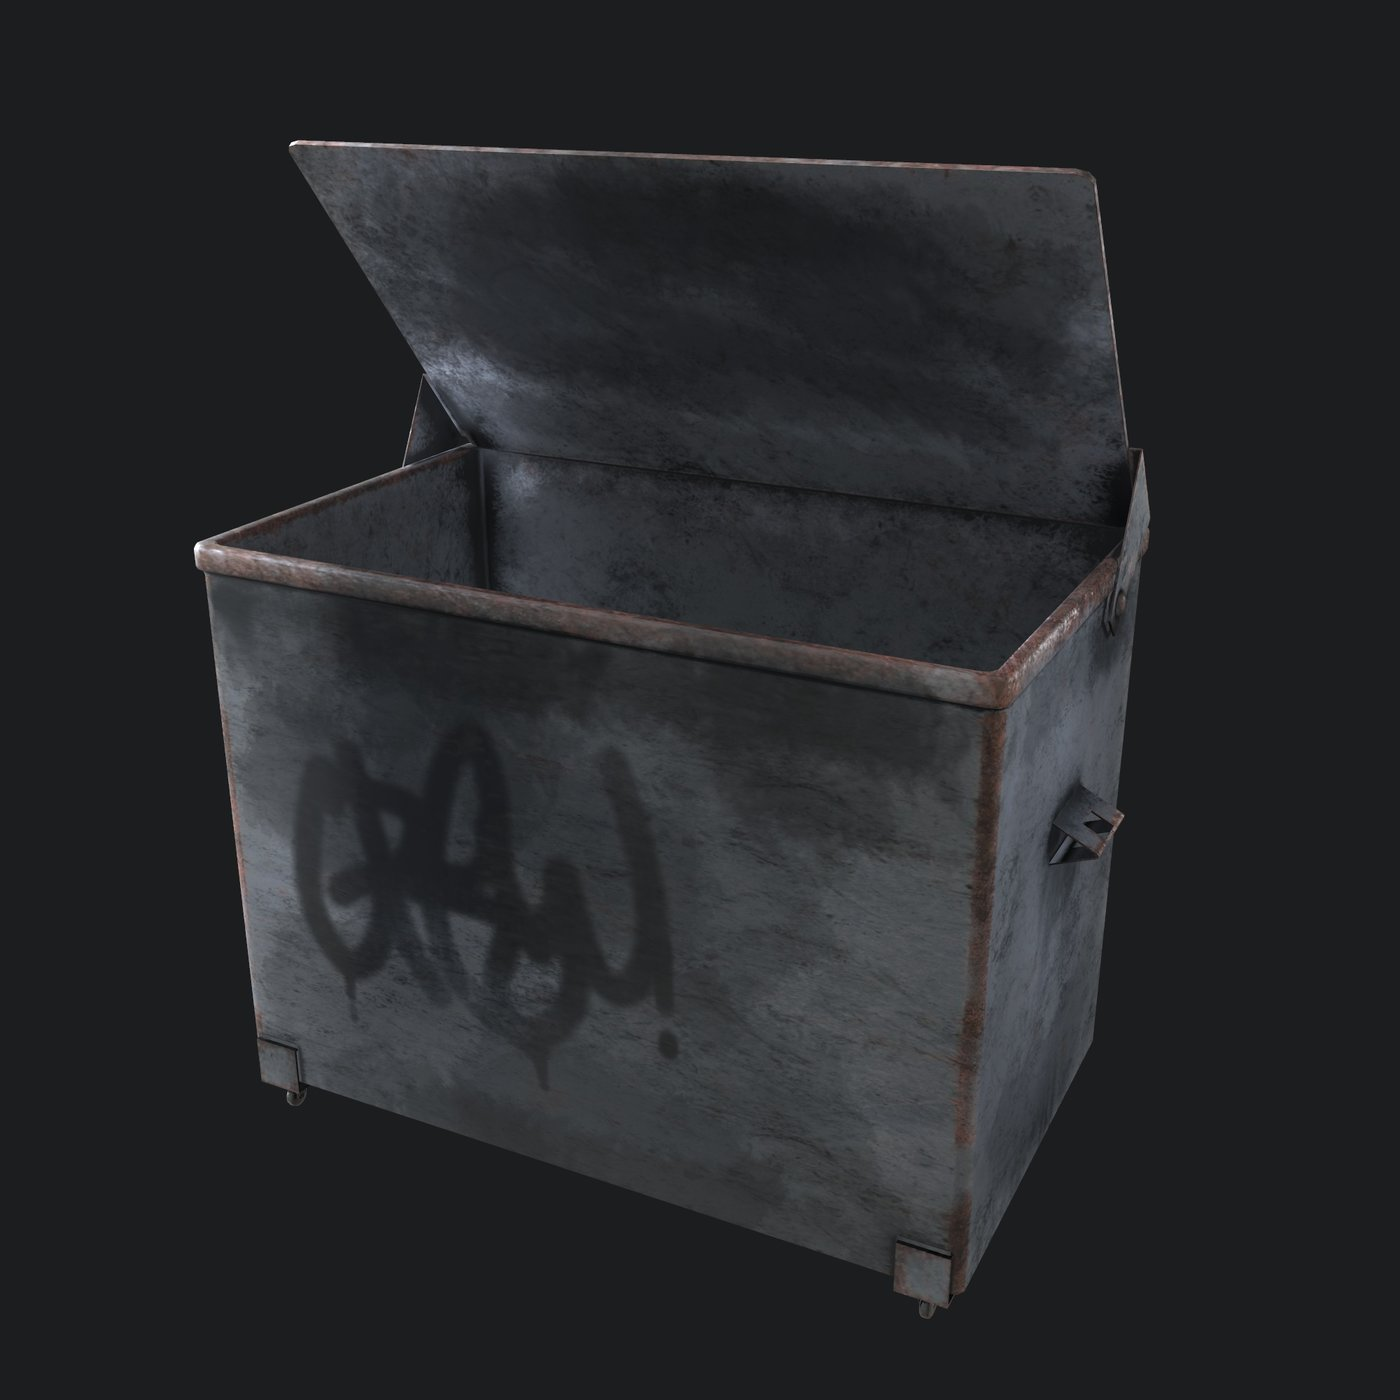 Dirty Trash Container